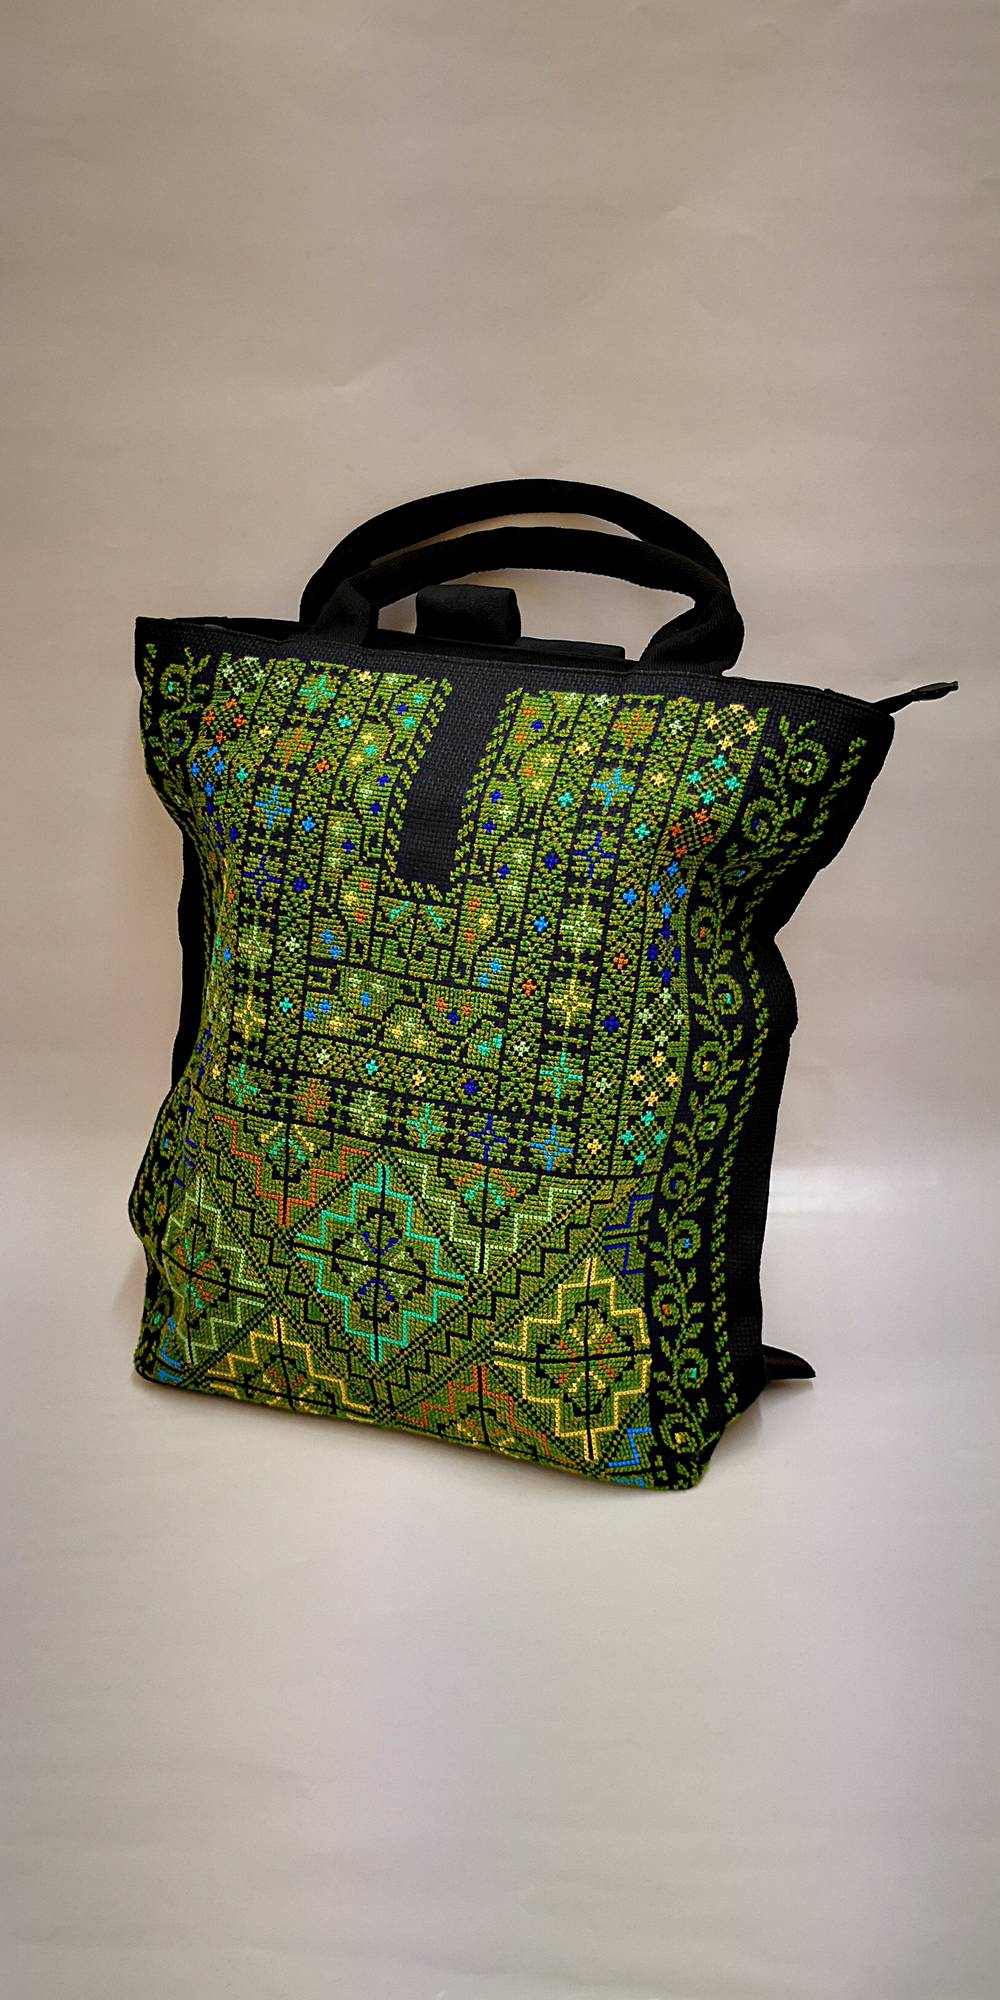 Embroidered Tote Backpack - Hadeel dbe74e7c7a6e8